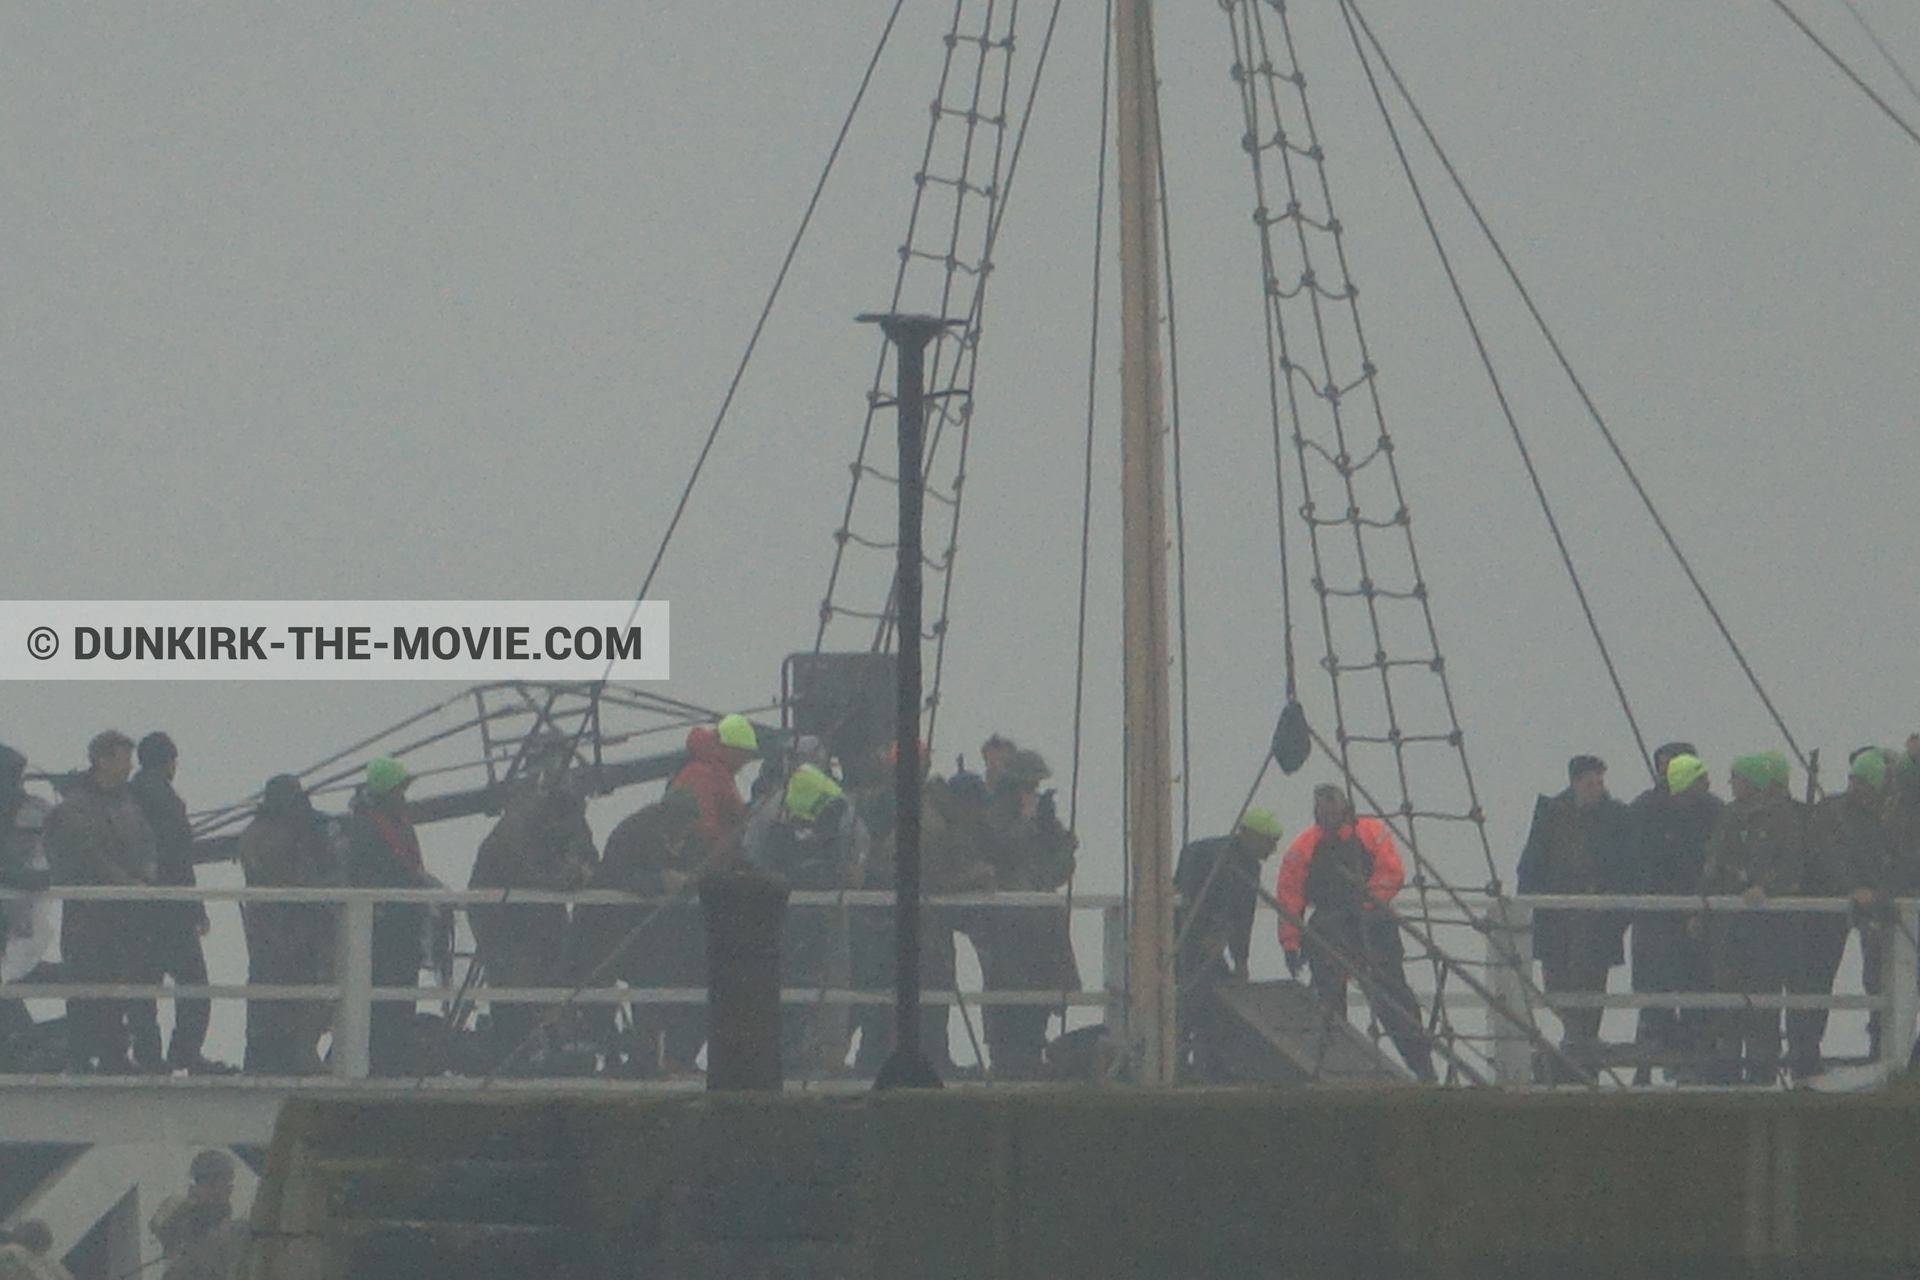 Picture with grey sky, supernumeraries, EST pier, technical team, M/S Rogaland,  from behind the scene of the Dunkirk movie by Nolan